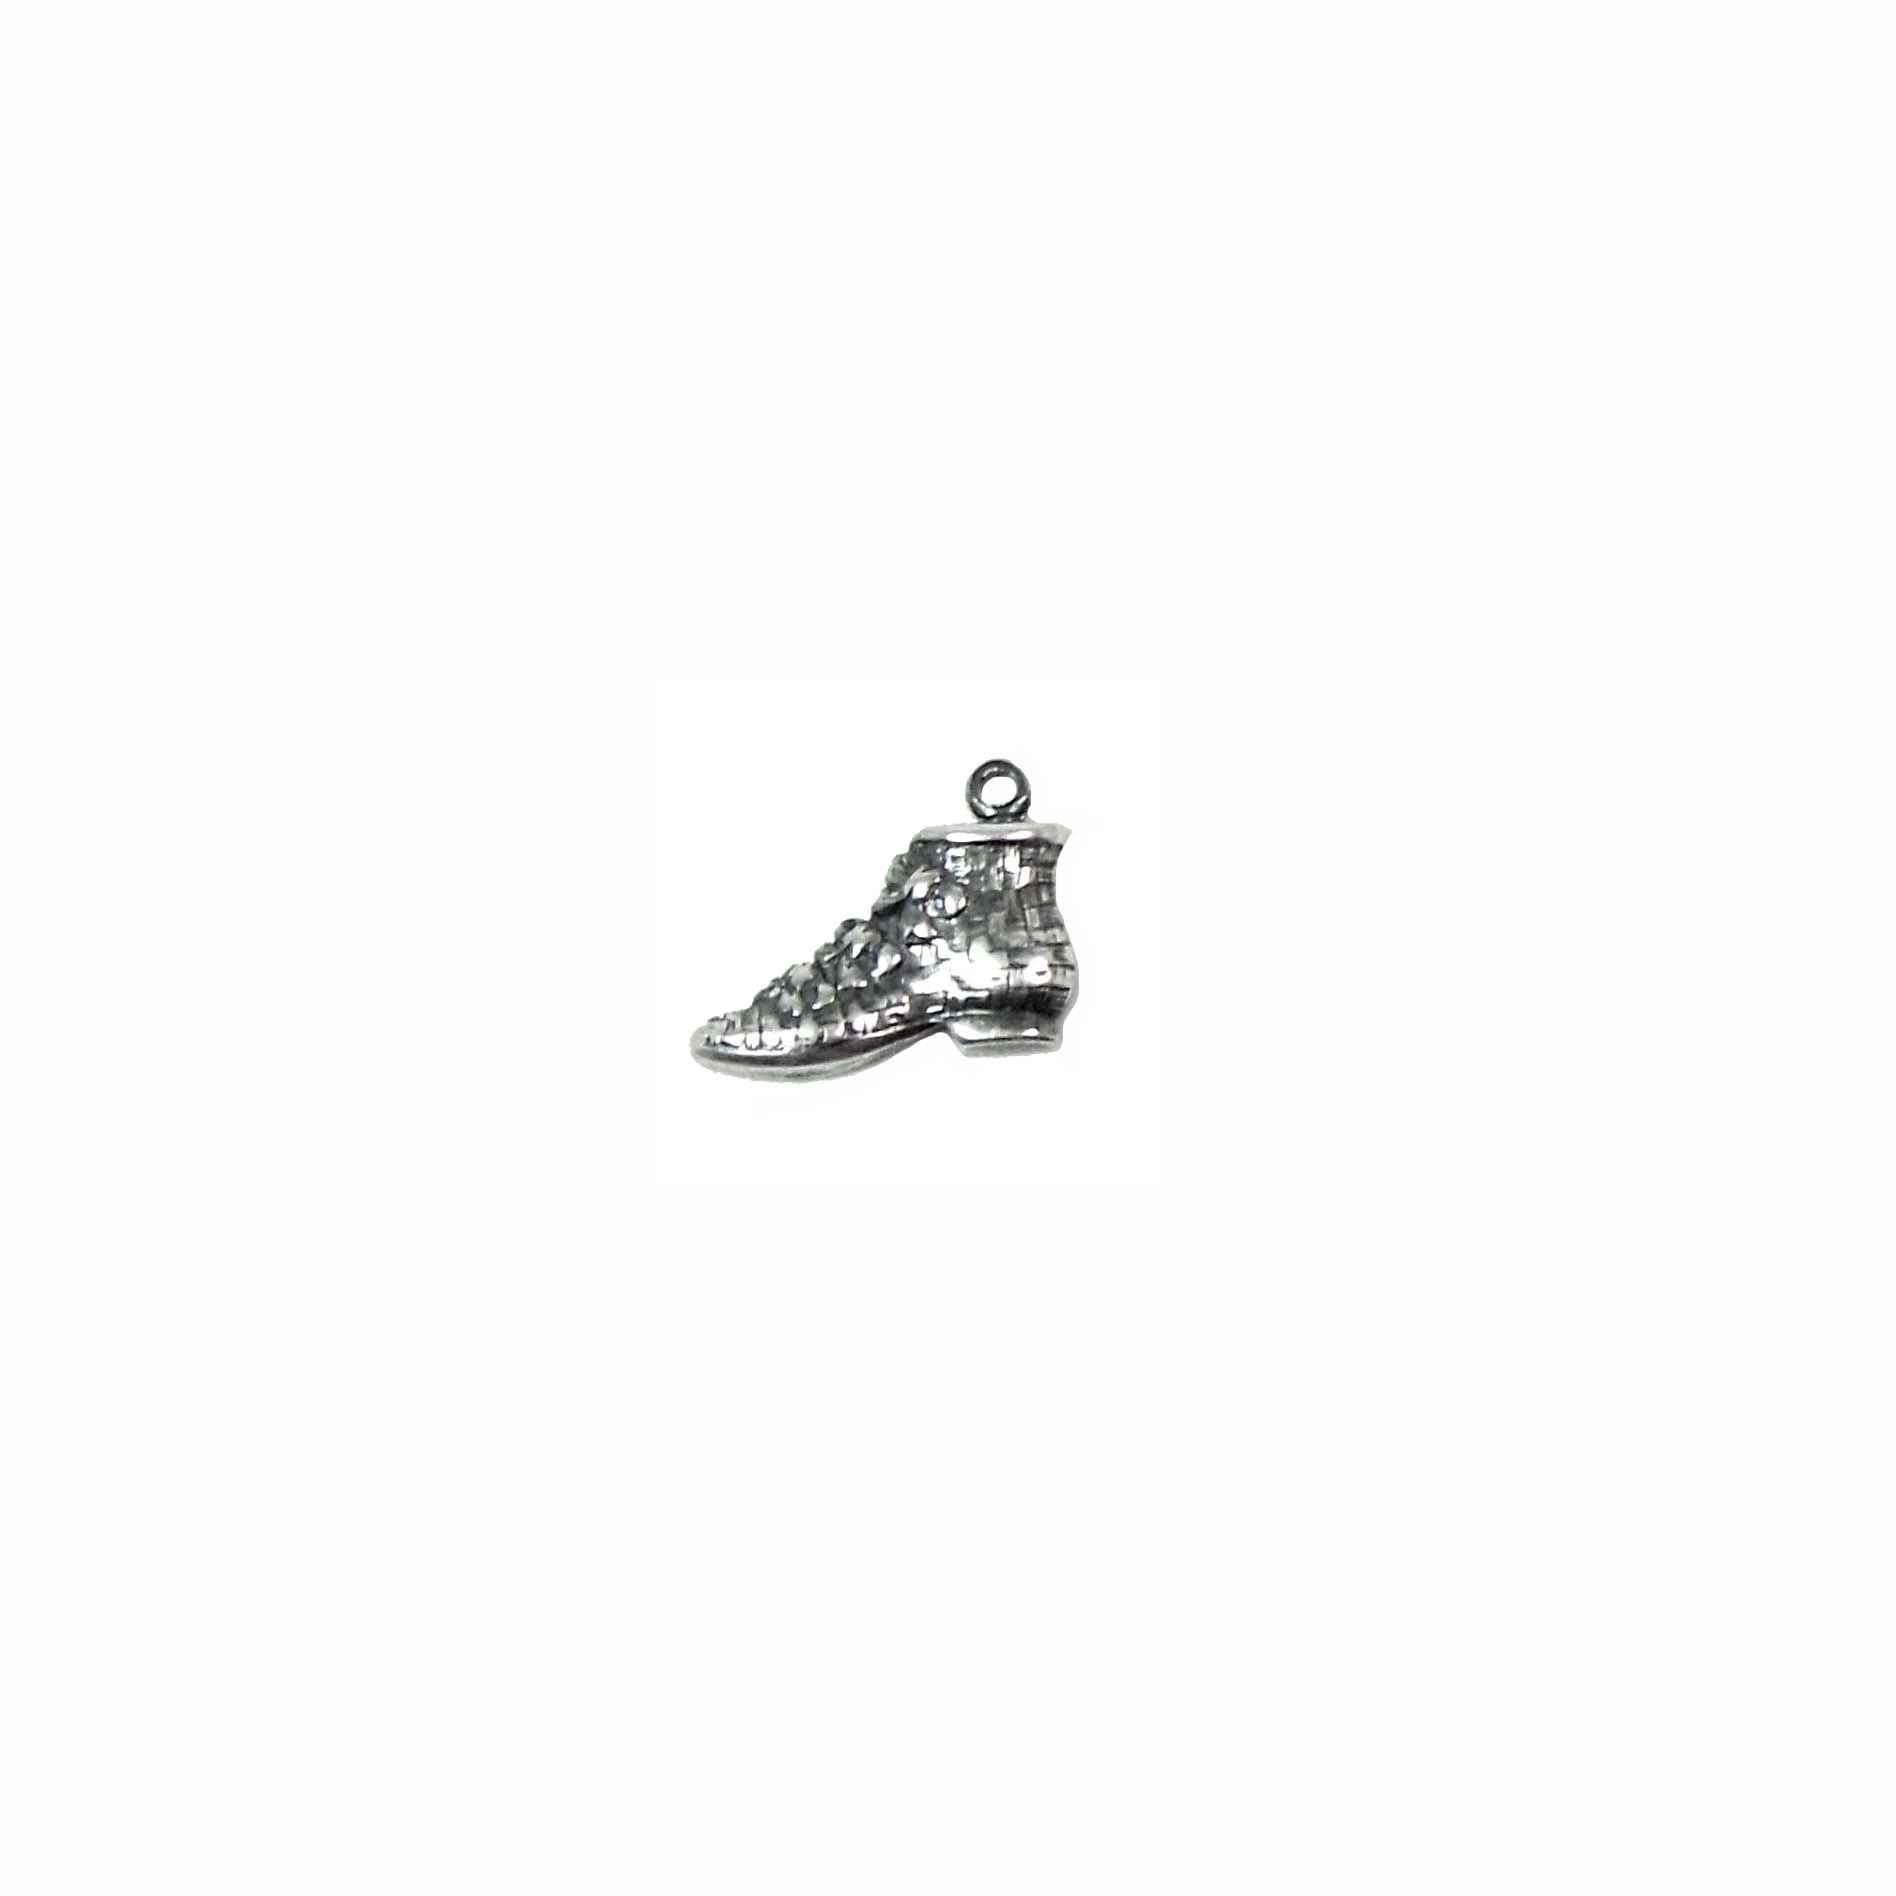 Victorian Slipper Charm, Vintage Shoe,  Floral Accents, Silverware Silverplate, 9 x 9mm